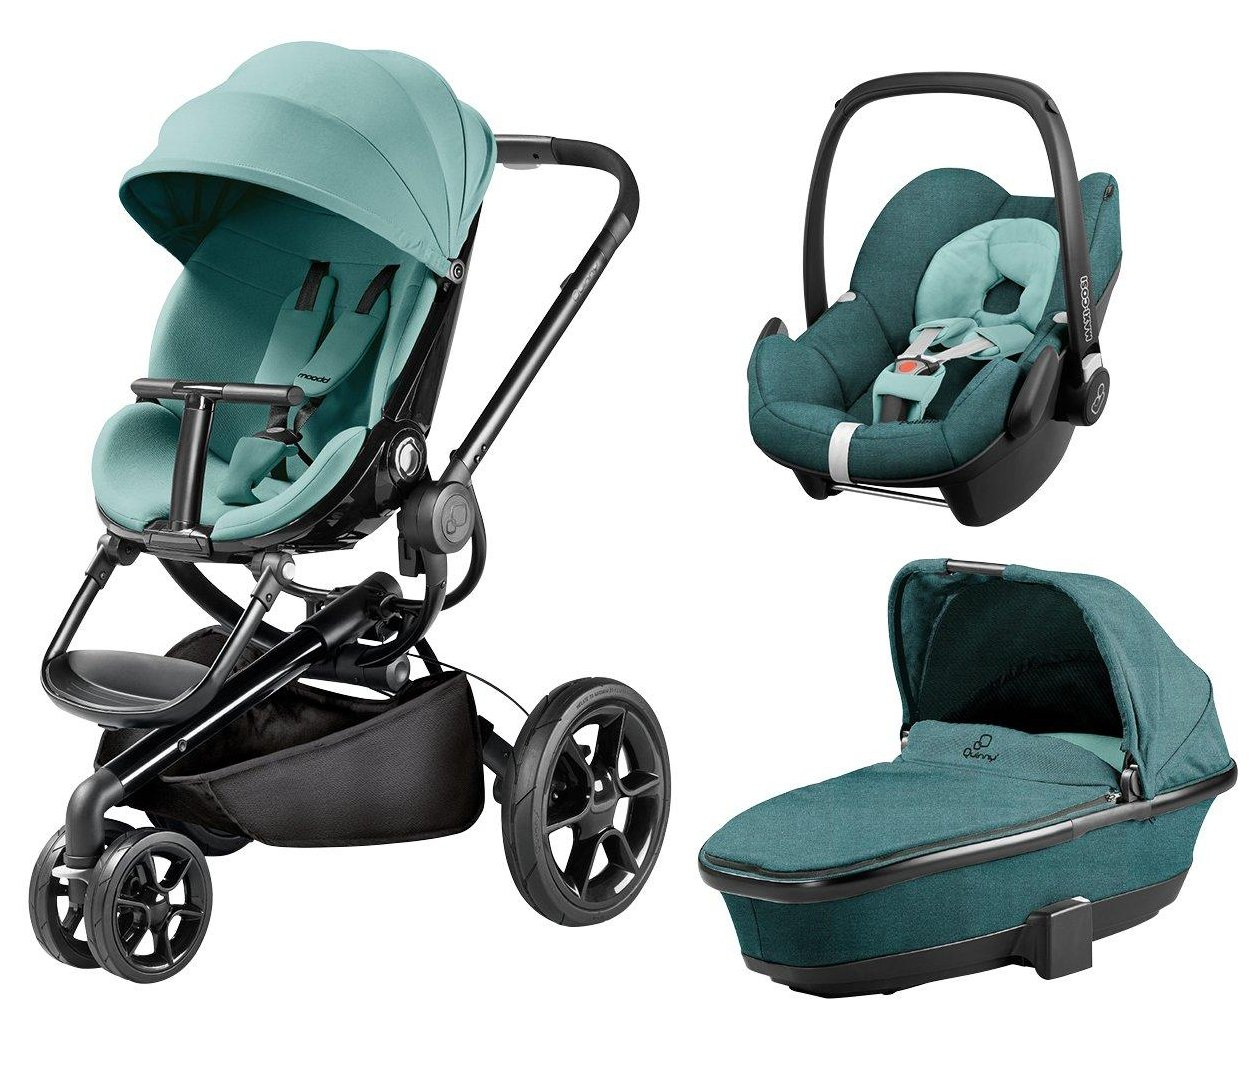 Quinny Quinny Moodd Pushchair, Foldable Carrycot, Pebble Car Seat Package - Novel Nile Quinny  1